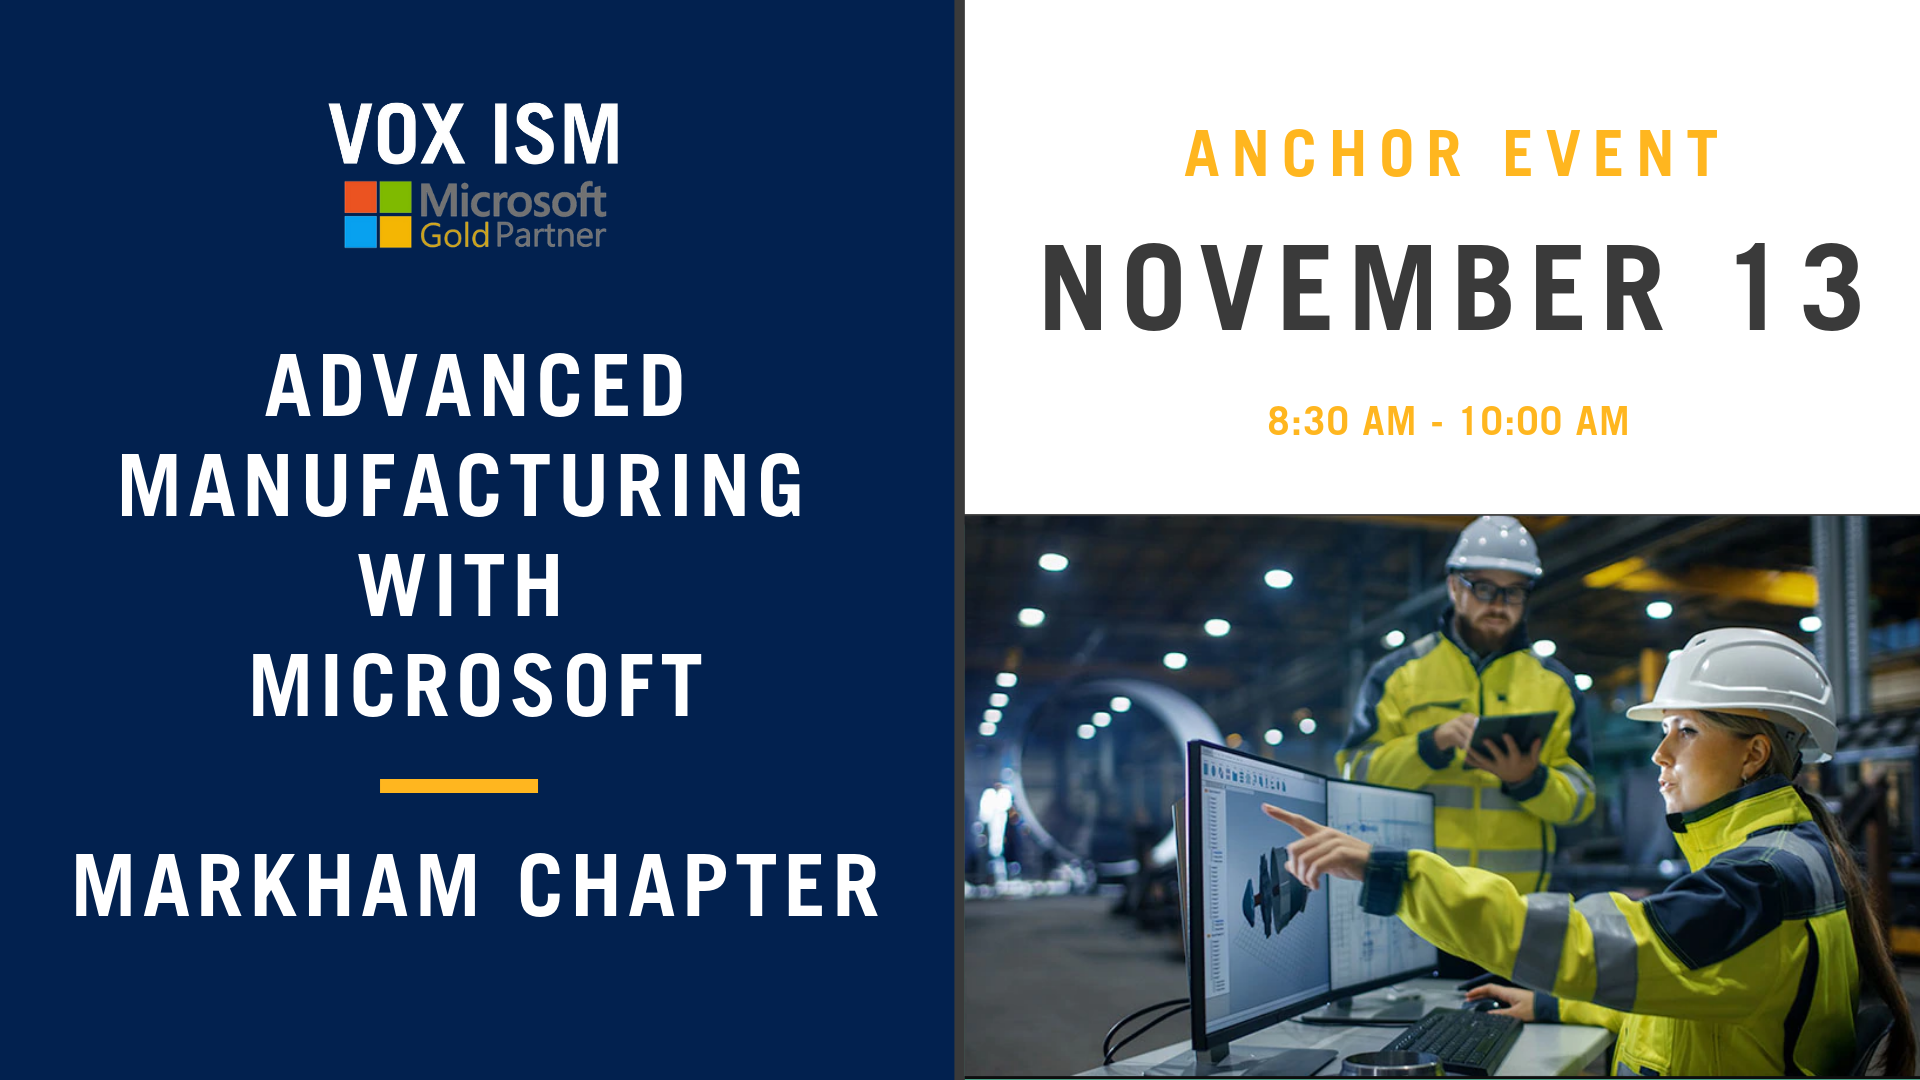 Advanced Manufacturing with Microsoft - Markham Chapter - November 13